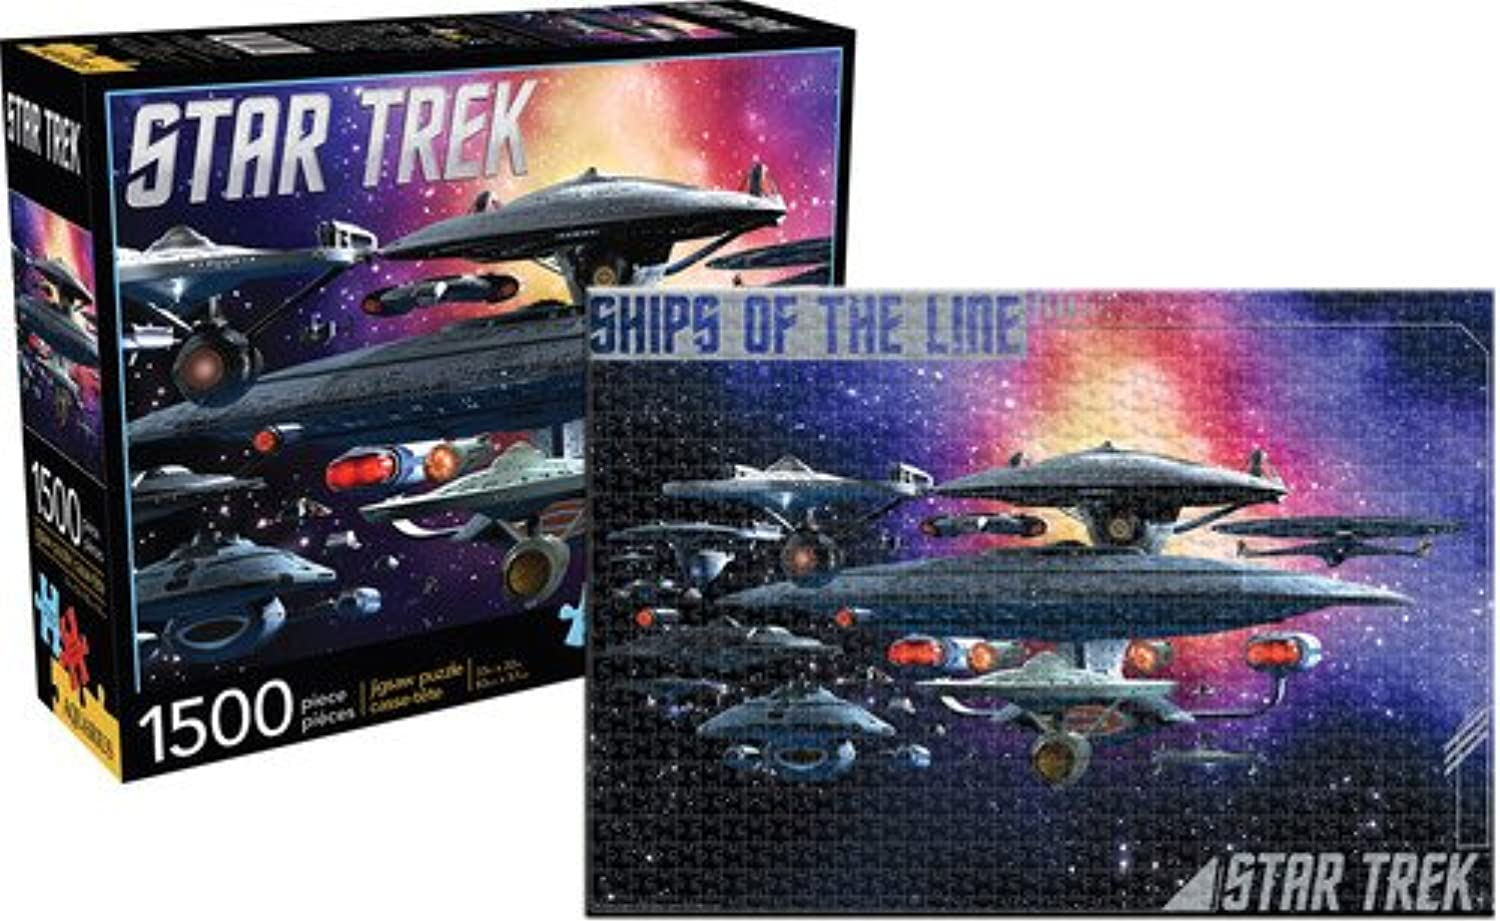 Star Trek Ships of The Line 1500 Pc Jigsaw Puzzle